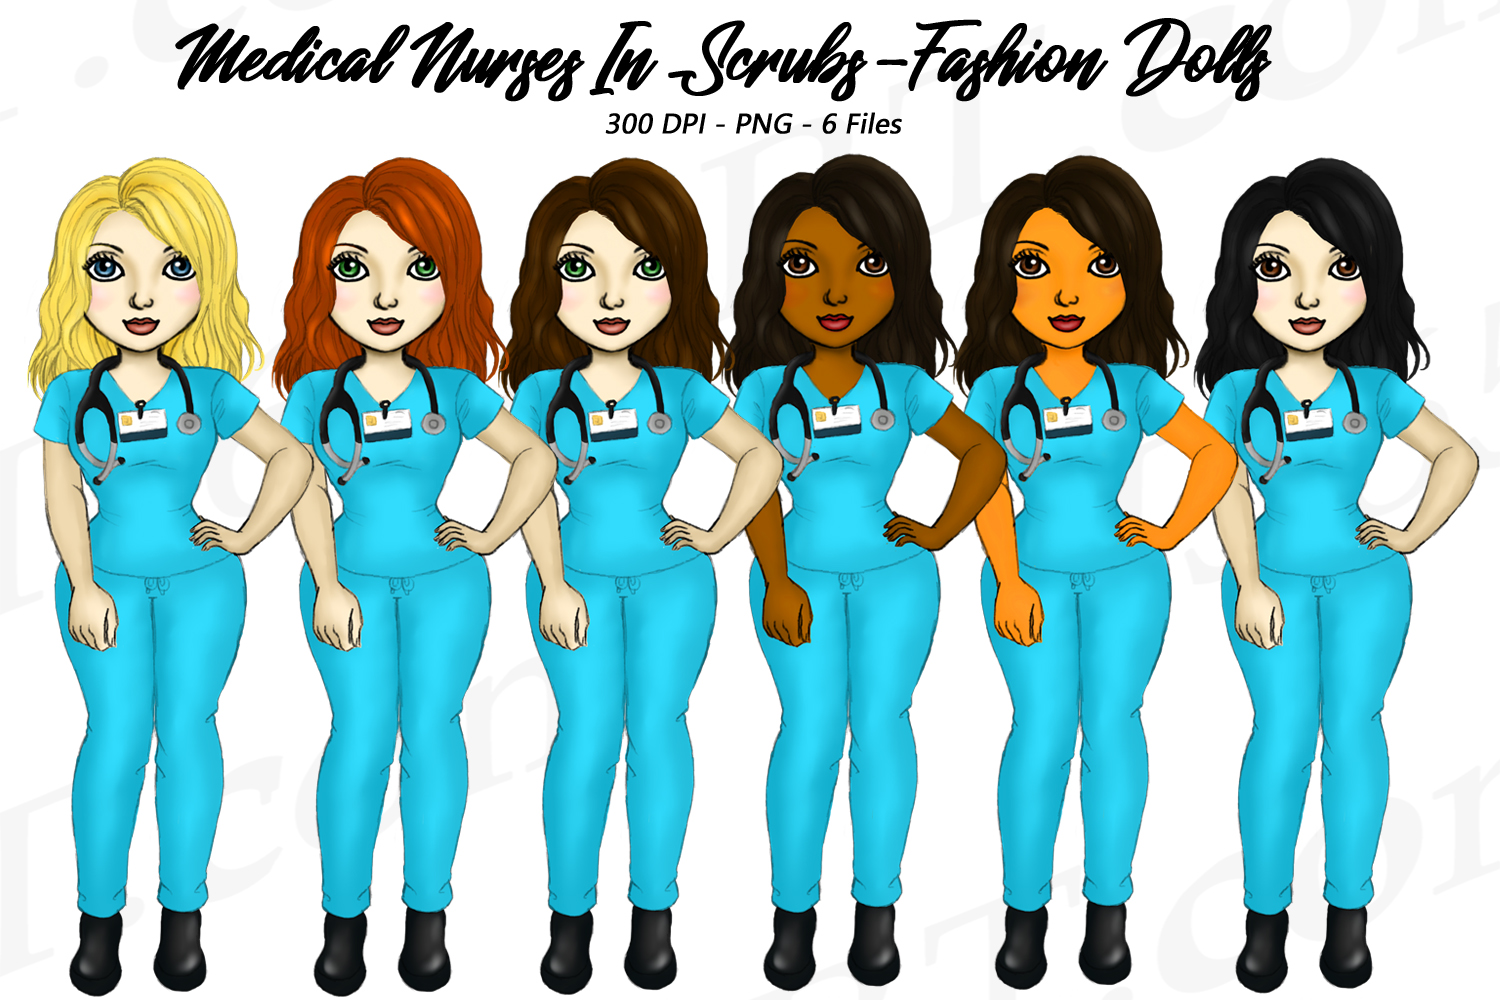 Beautiful Nurse Girls in Scrubs Clipart Fashion Dolls PNG example image 1